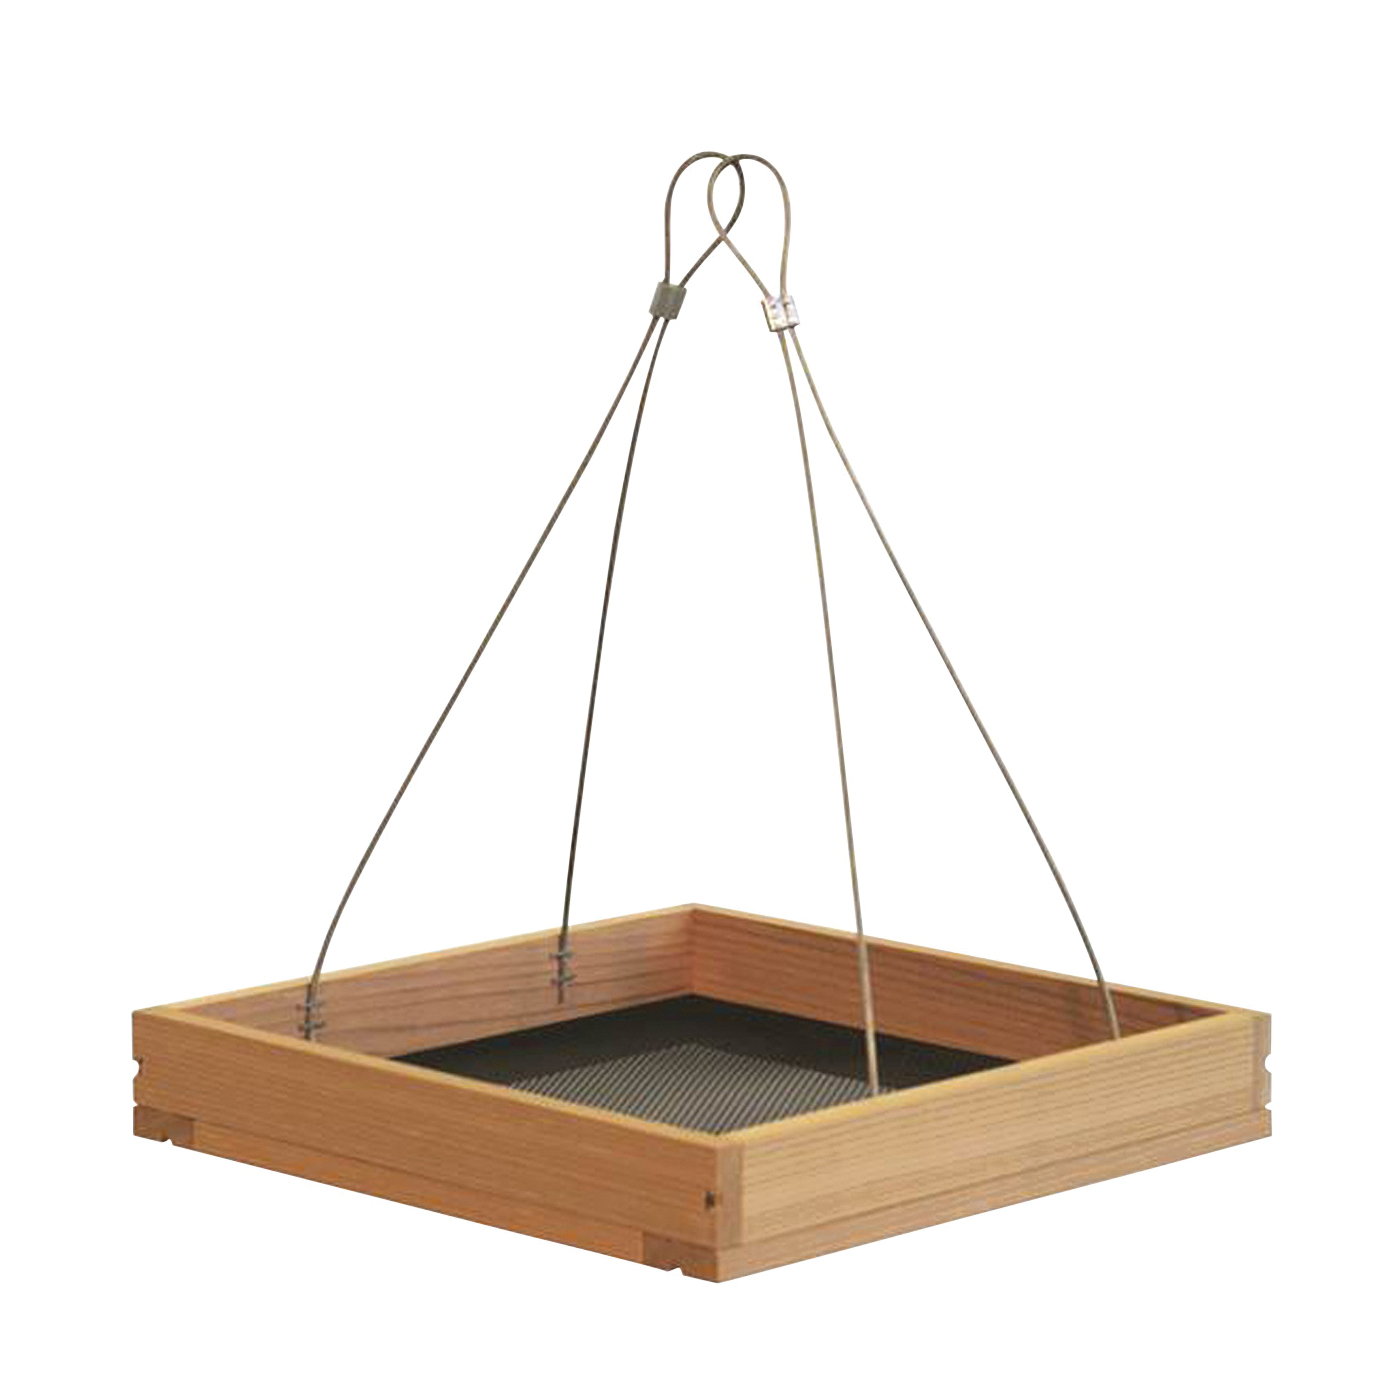 Picture of Perky-Pet 50178 Hanging Tray Bird Feeder, 1.6 lb, Metal/Pine, 9-1/4 in H